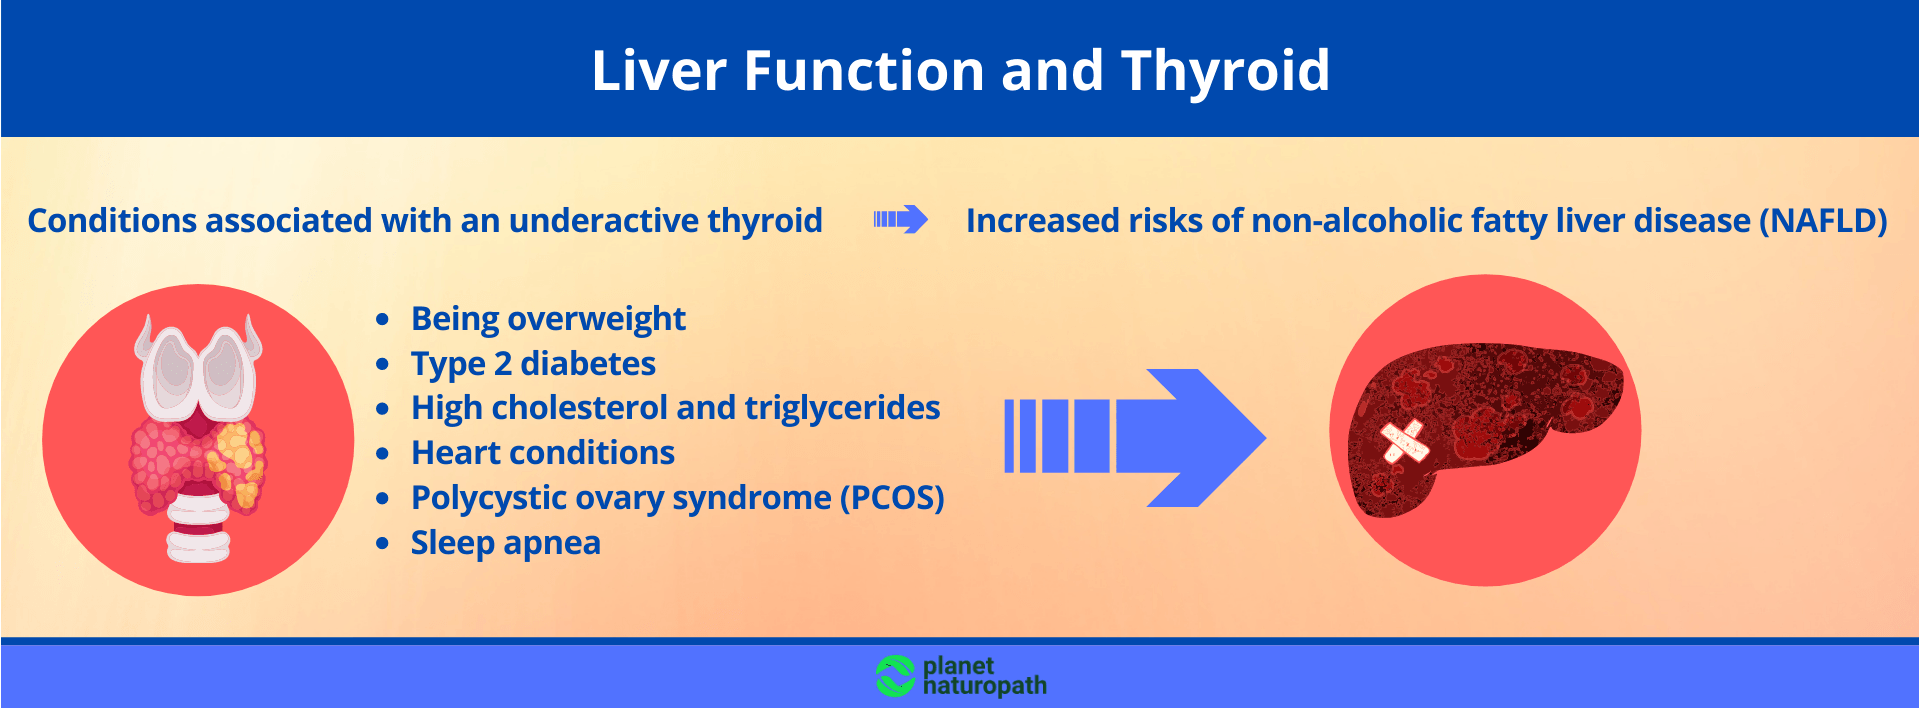 Liver Function and Thyroid